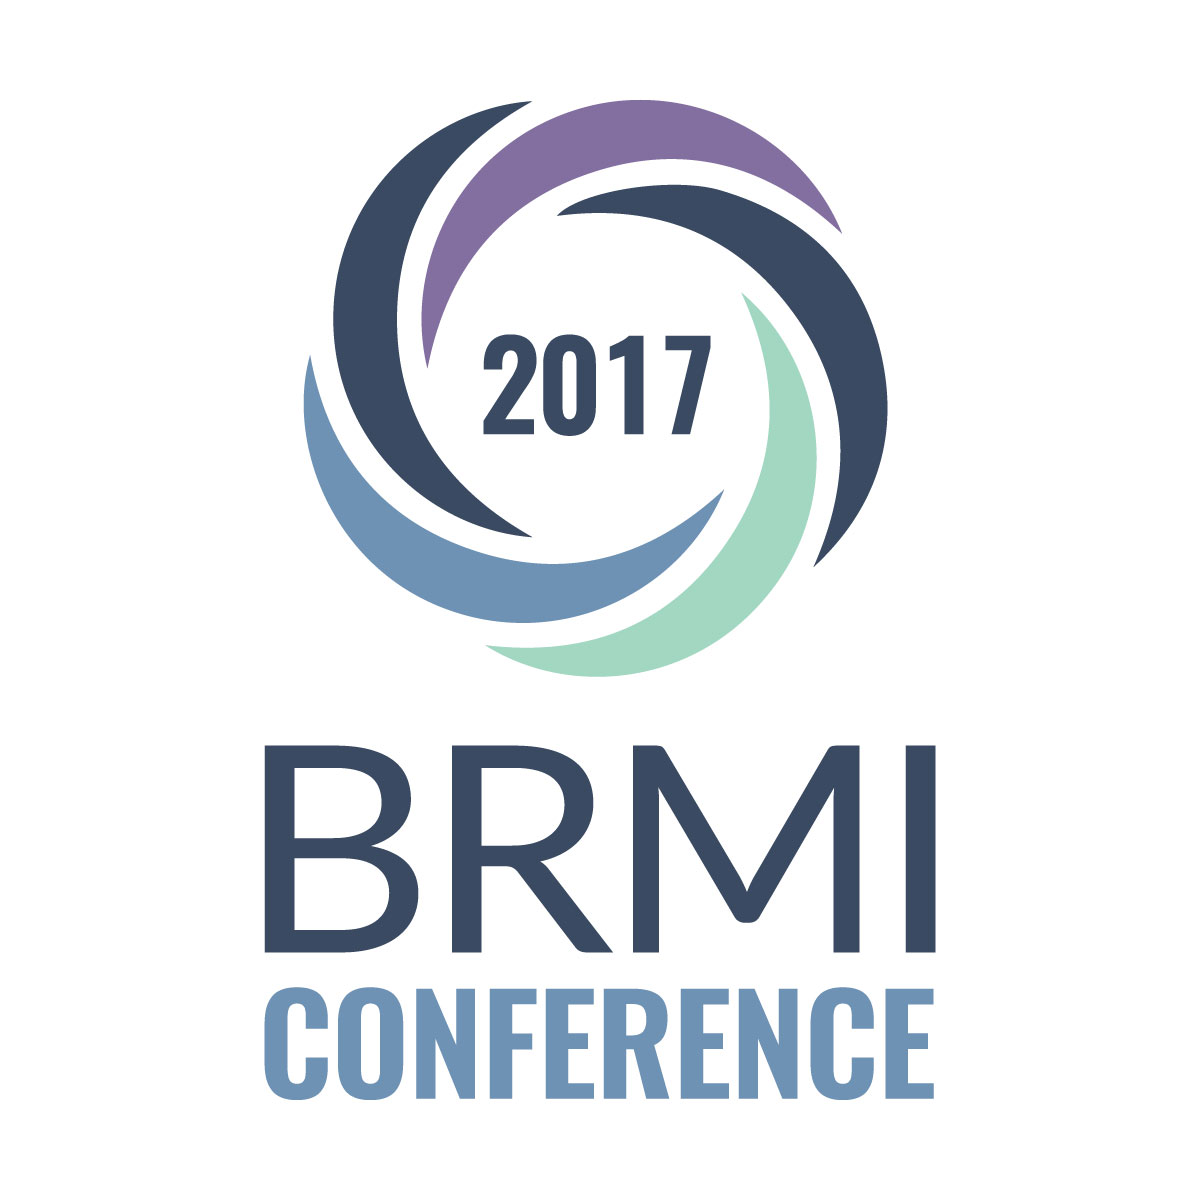 BRMI Conference2017 Logo Vertical Color